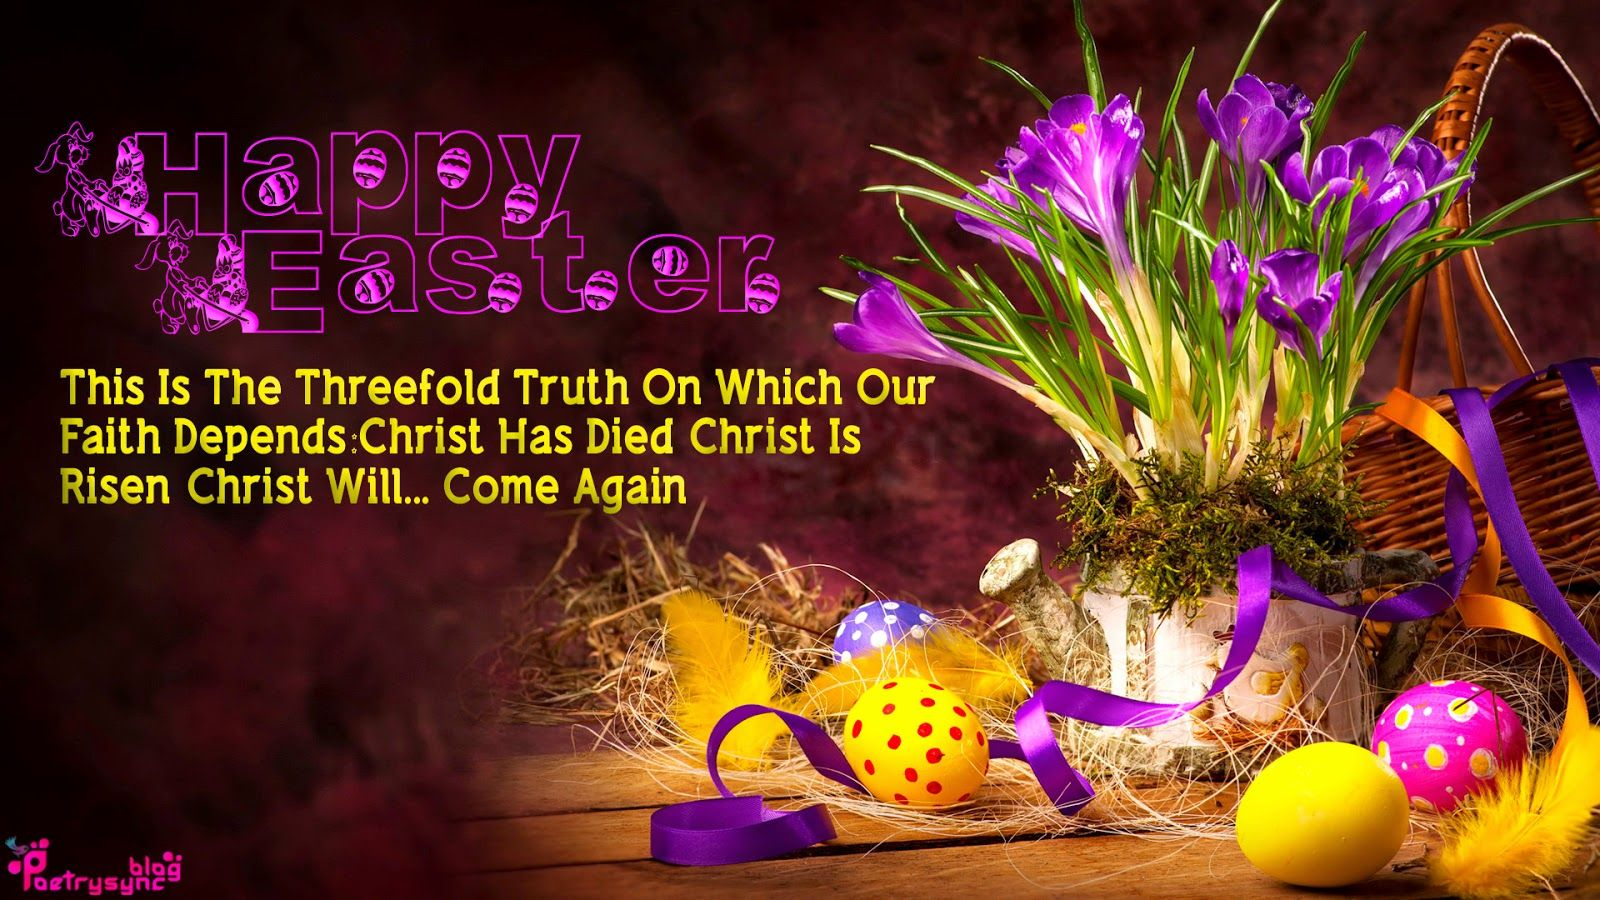 Happy easter wishes hd wallpaper fb covers easter pinterest happy easter wishes hd wallpaper kristyandbryce Choice Image